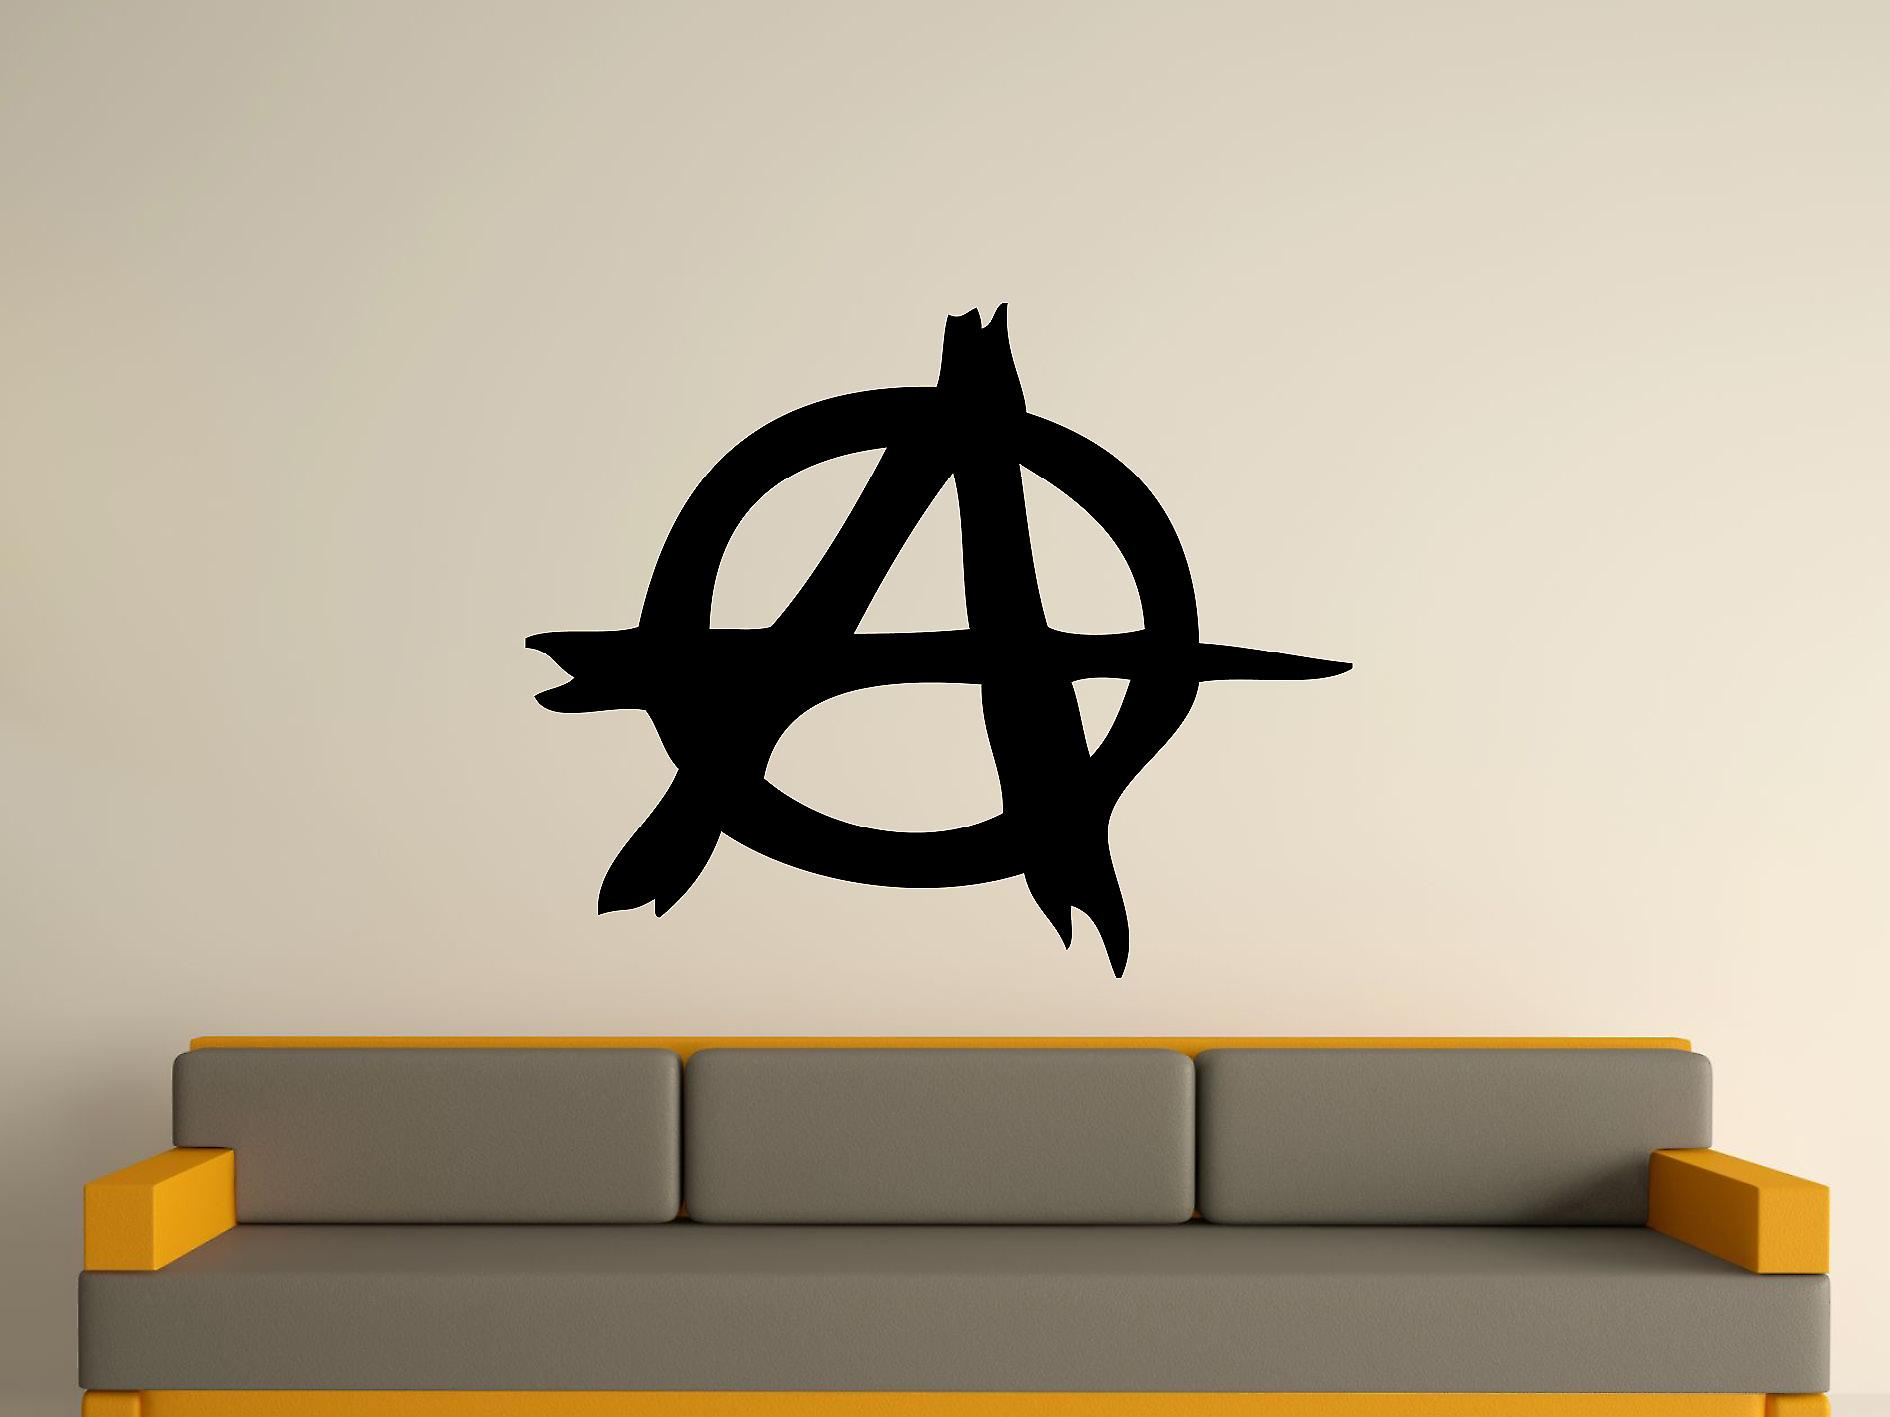 Anarchy symbool Wall Art Sticker - zwart